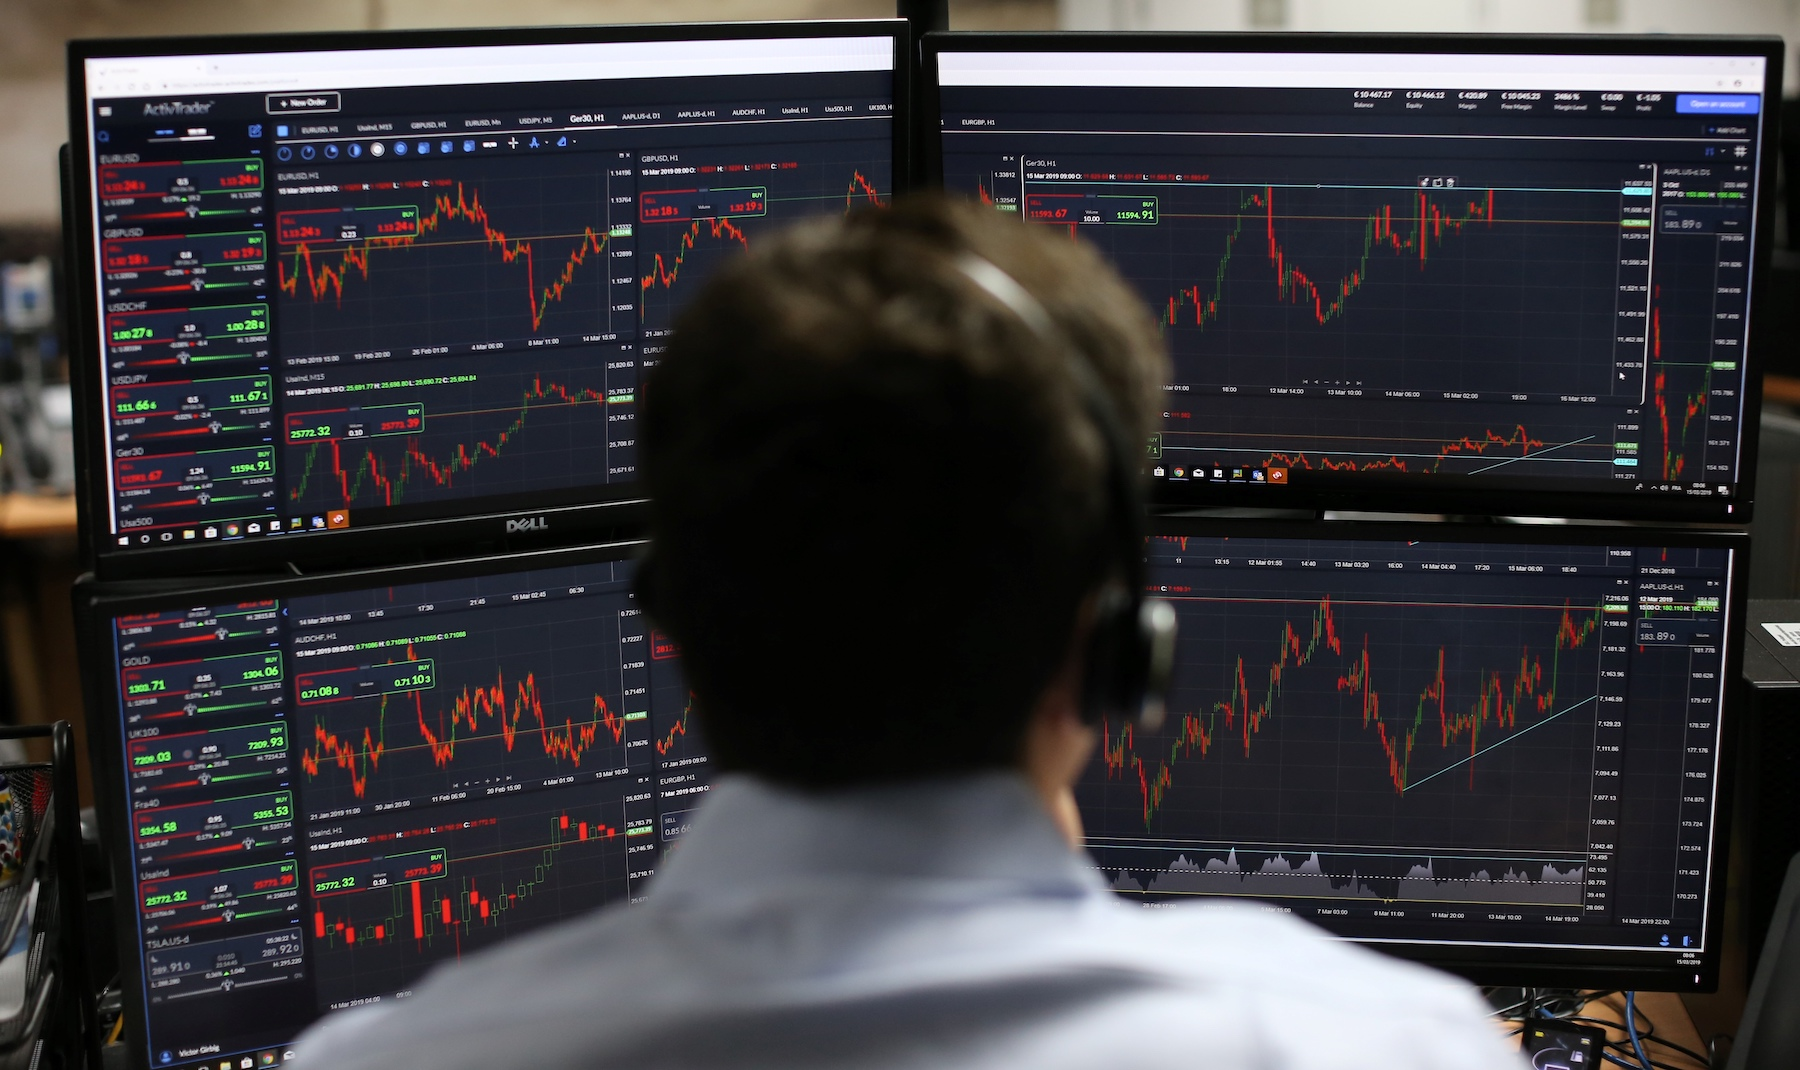 Employees monitor financial data on their computer screens as they work the brokerage in London in 2019